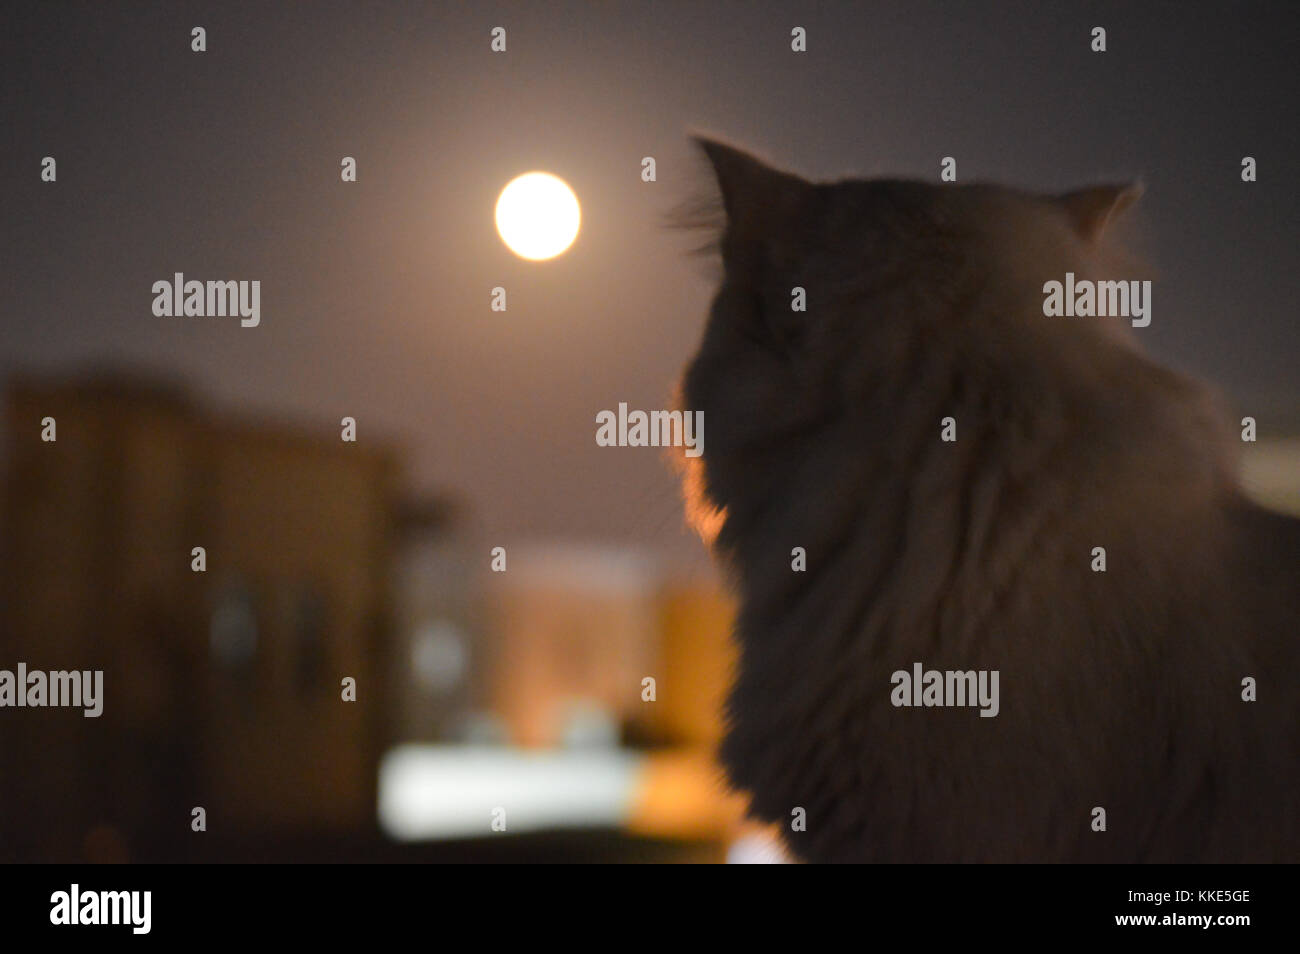 A white cat on a rooftop at night with a beautiful moon. - Stock Image